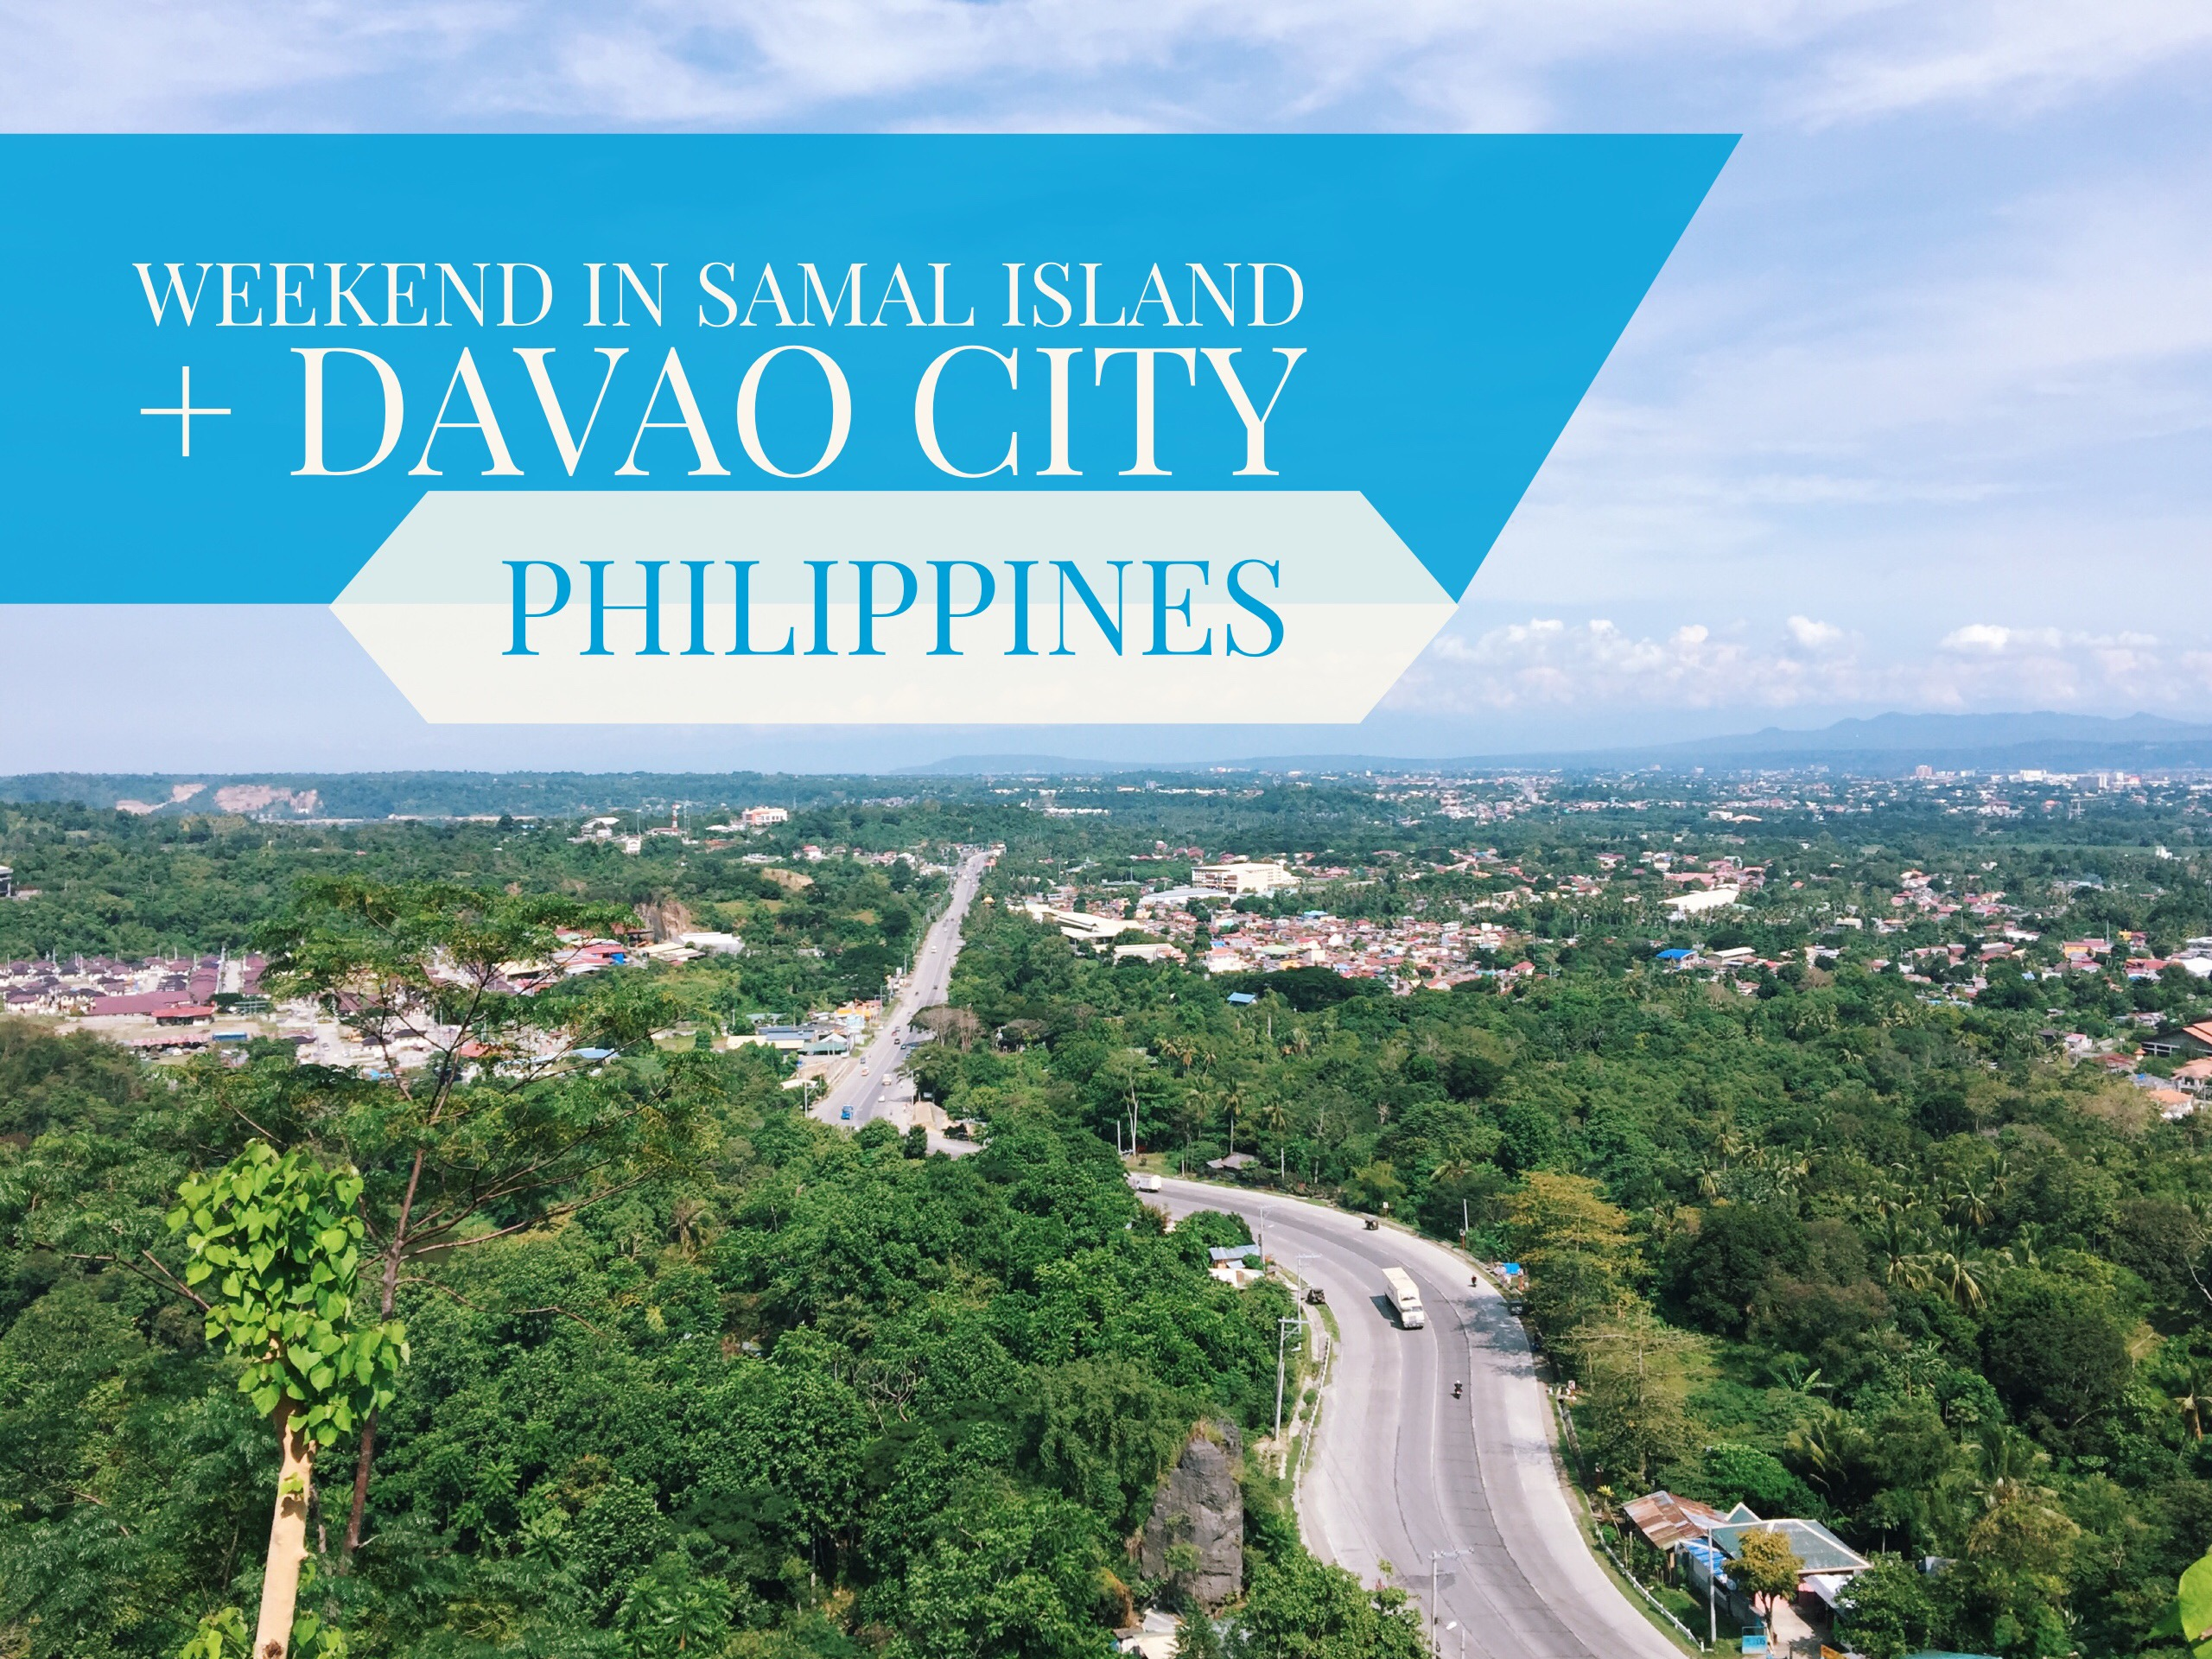 davao philippines Explore an array of davao city, ph vacation rentals, including apartments, houses & more bookable online choose from more than 53 properties, ideal house rentals for families, groups and.